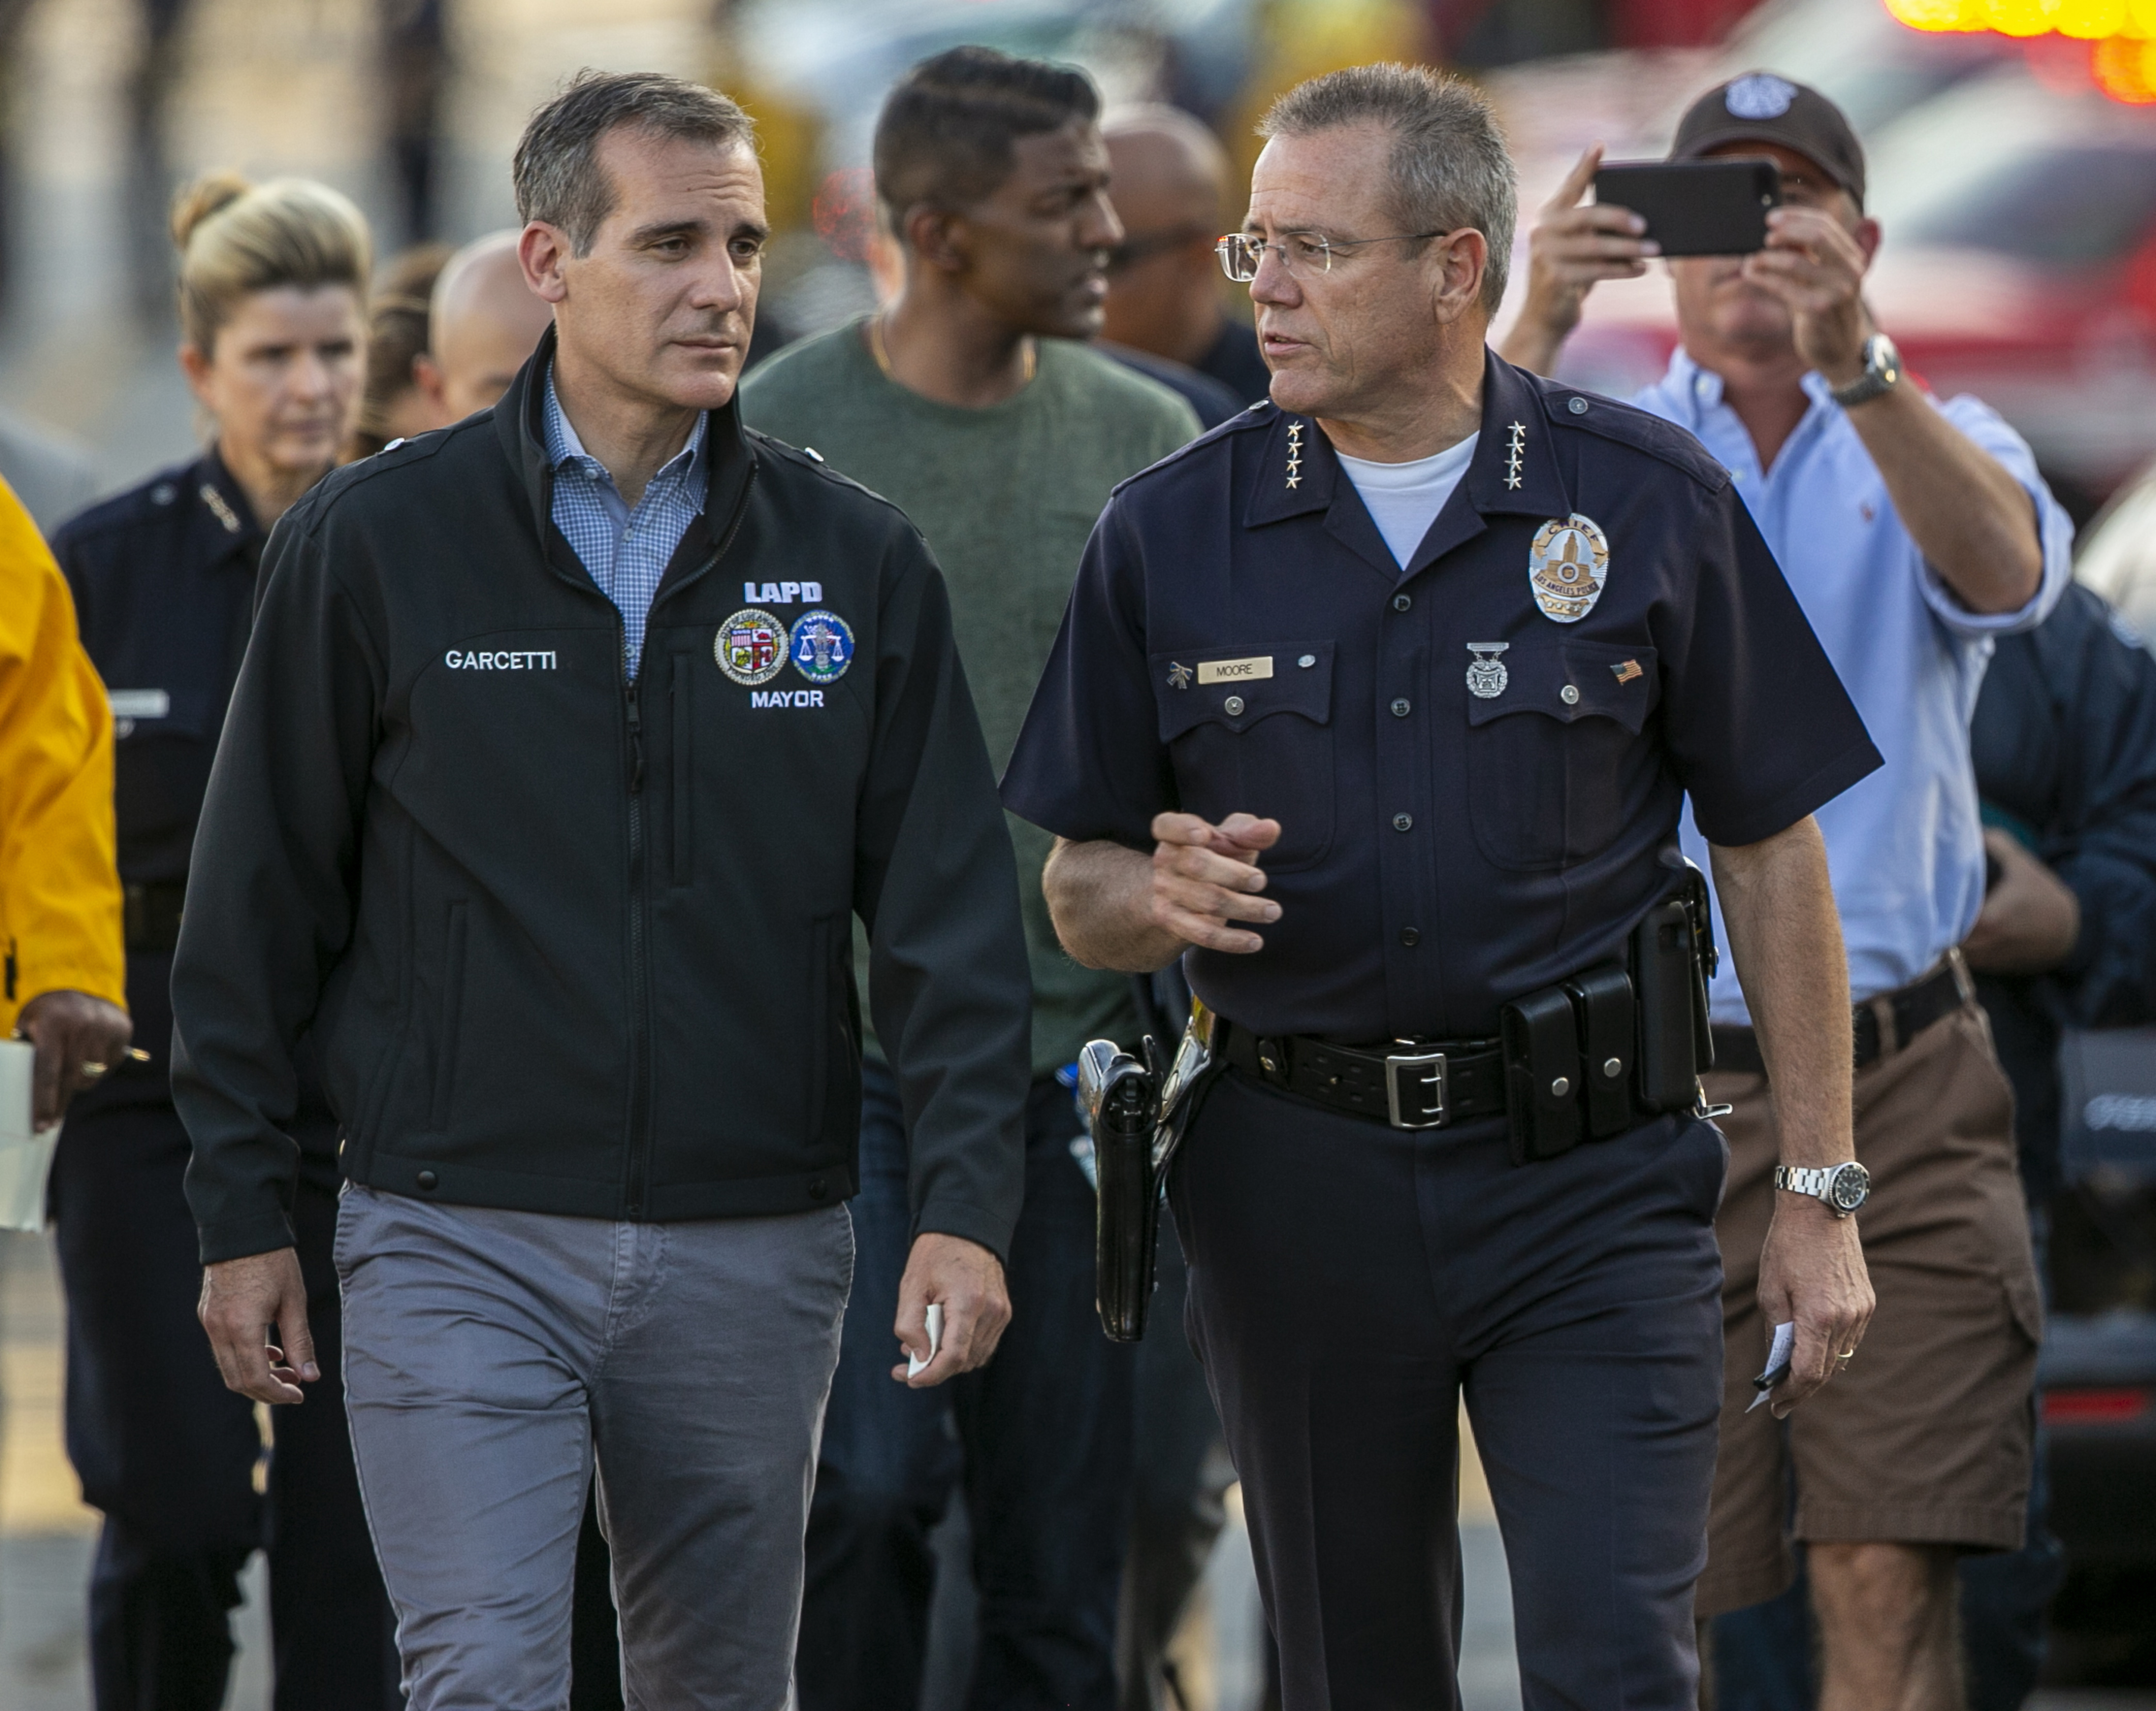 Los Angeles Mayor Eric Garcetti, left, and Police Chief Michel Moore walk to a news conference after a gunman, who barricaded himself inside a Trader Joe's store, was arrested in Los Angeles Saturday, July 21, 2018. Police believe a man involved in a standoff at the Los Angeles supermarket shot his grandmother and girlfriend and then fired at officers during a pursuit before he crashed into a utility pole outside the supermarket and ran inside the store. Hours after he took hostages in the store, the suspect surrendered.(AP Photo/Damian Dovarganes)